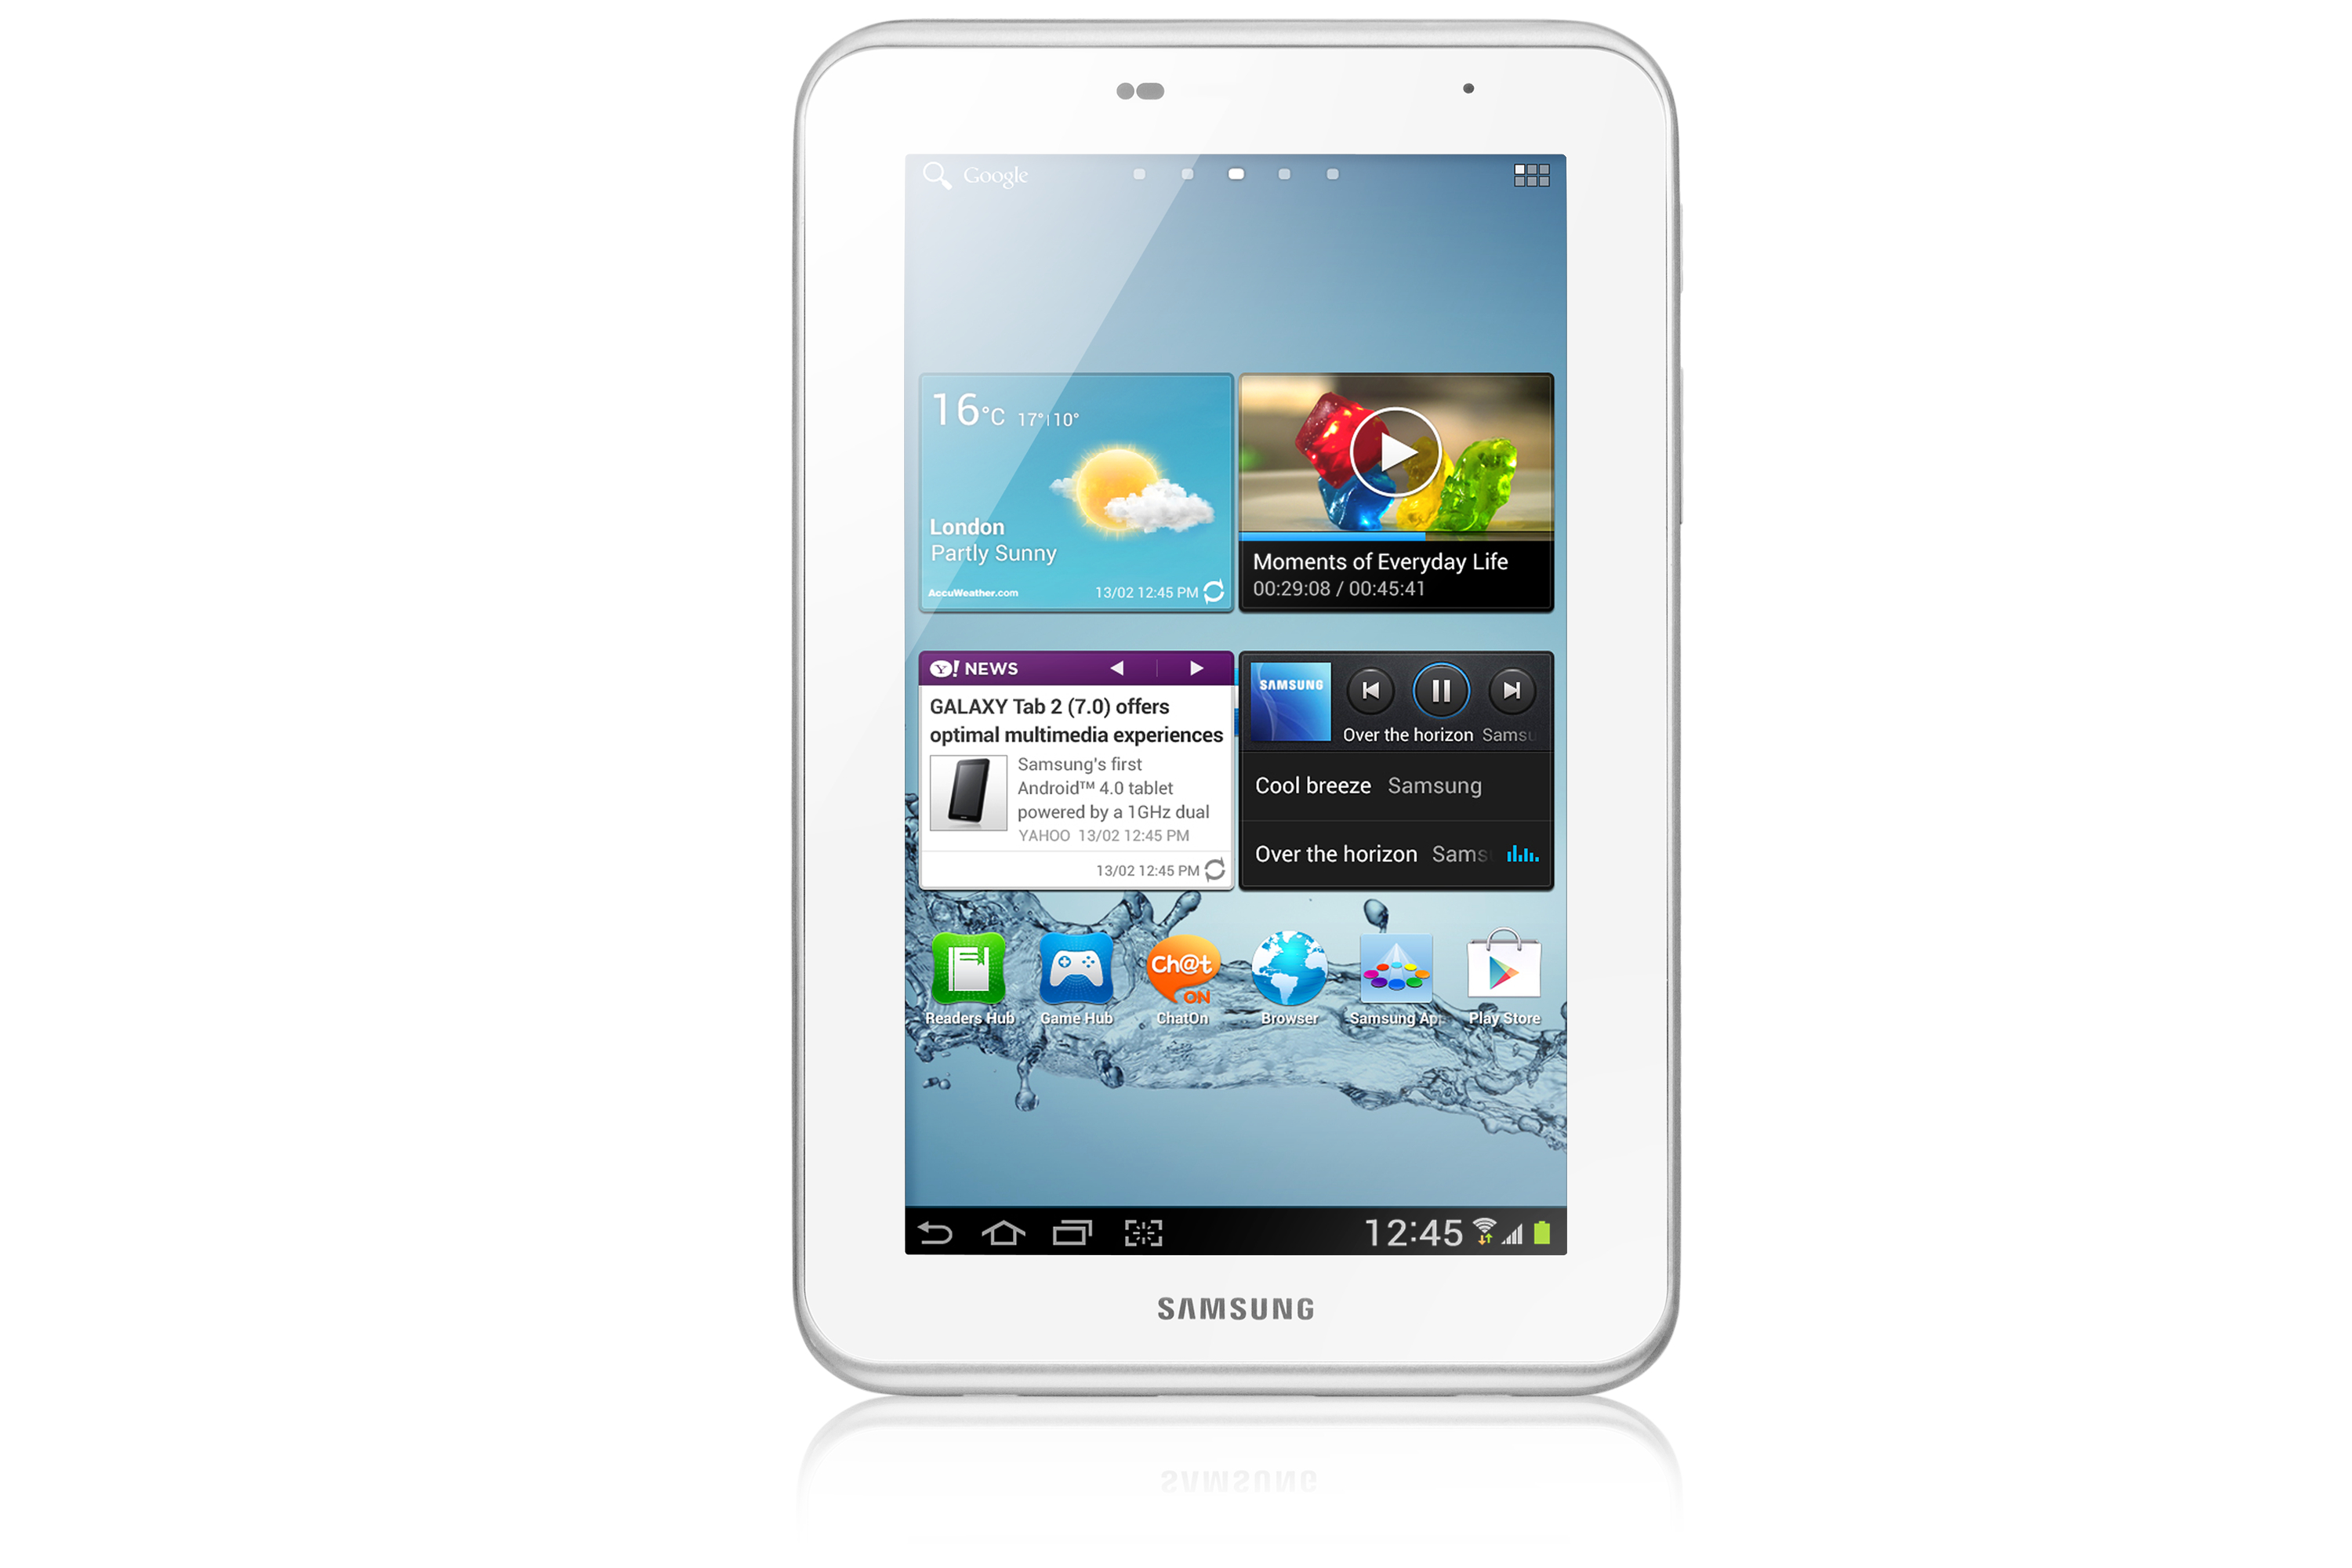 samsung gt p3110 galaxy tab 2 7 tablet 8gb white refurbished grade b. Black Bedroom Furniture Sets. Home Design Ideas